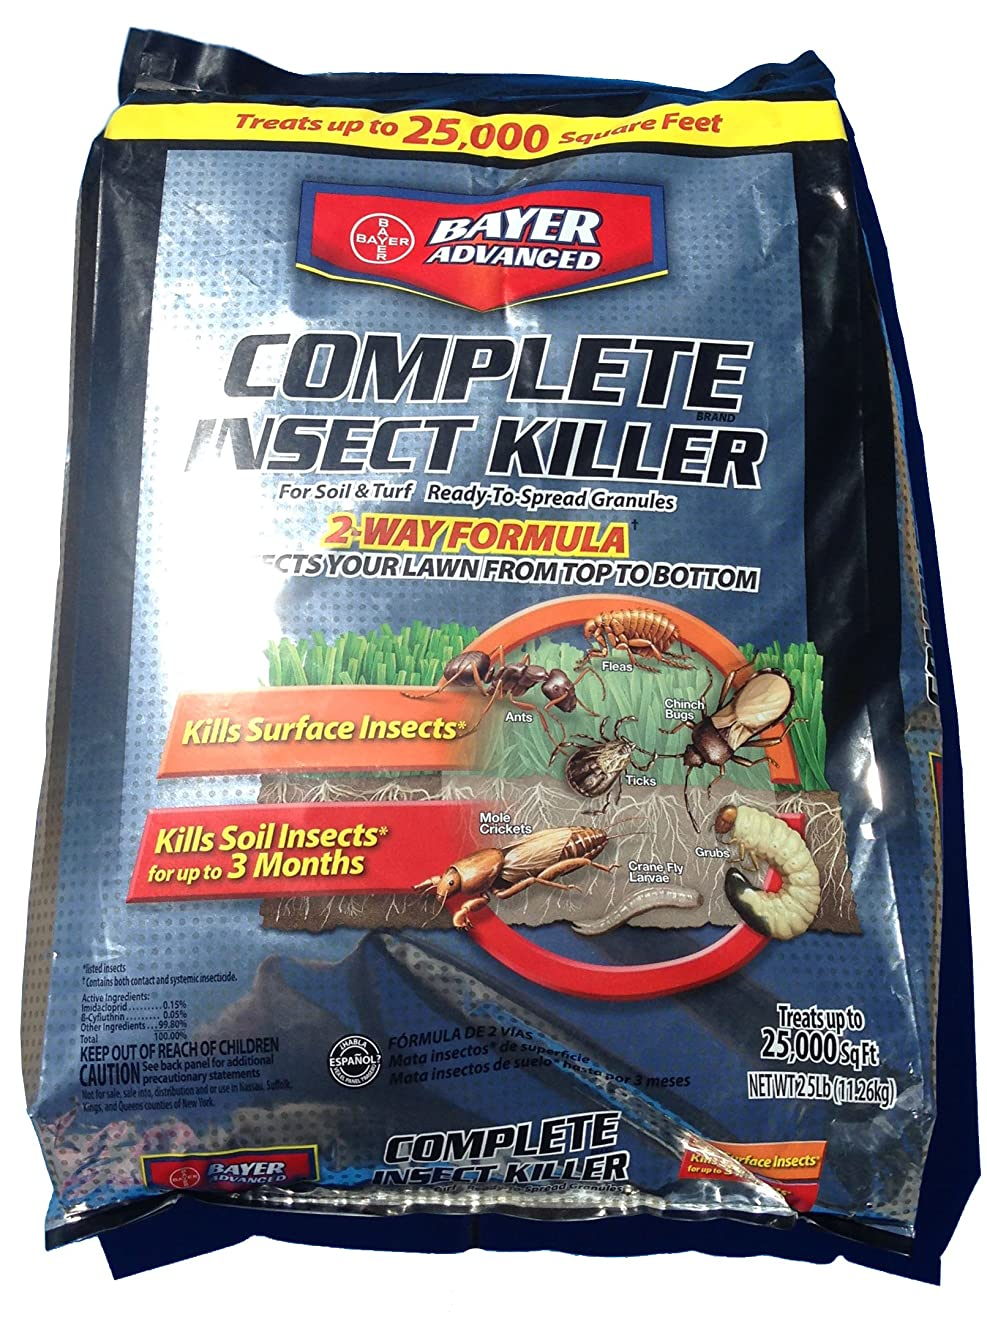 Complete Brand Insect Killer for Soil and Turf (Treats up to 25,000 Square Feet!)